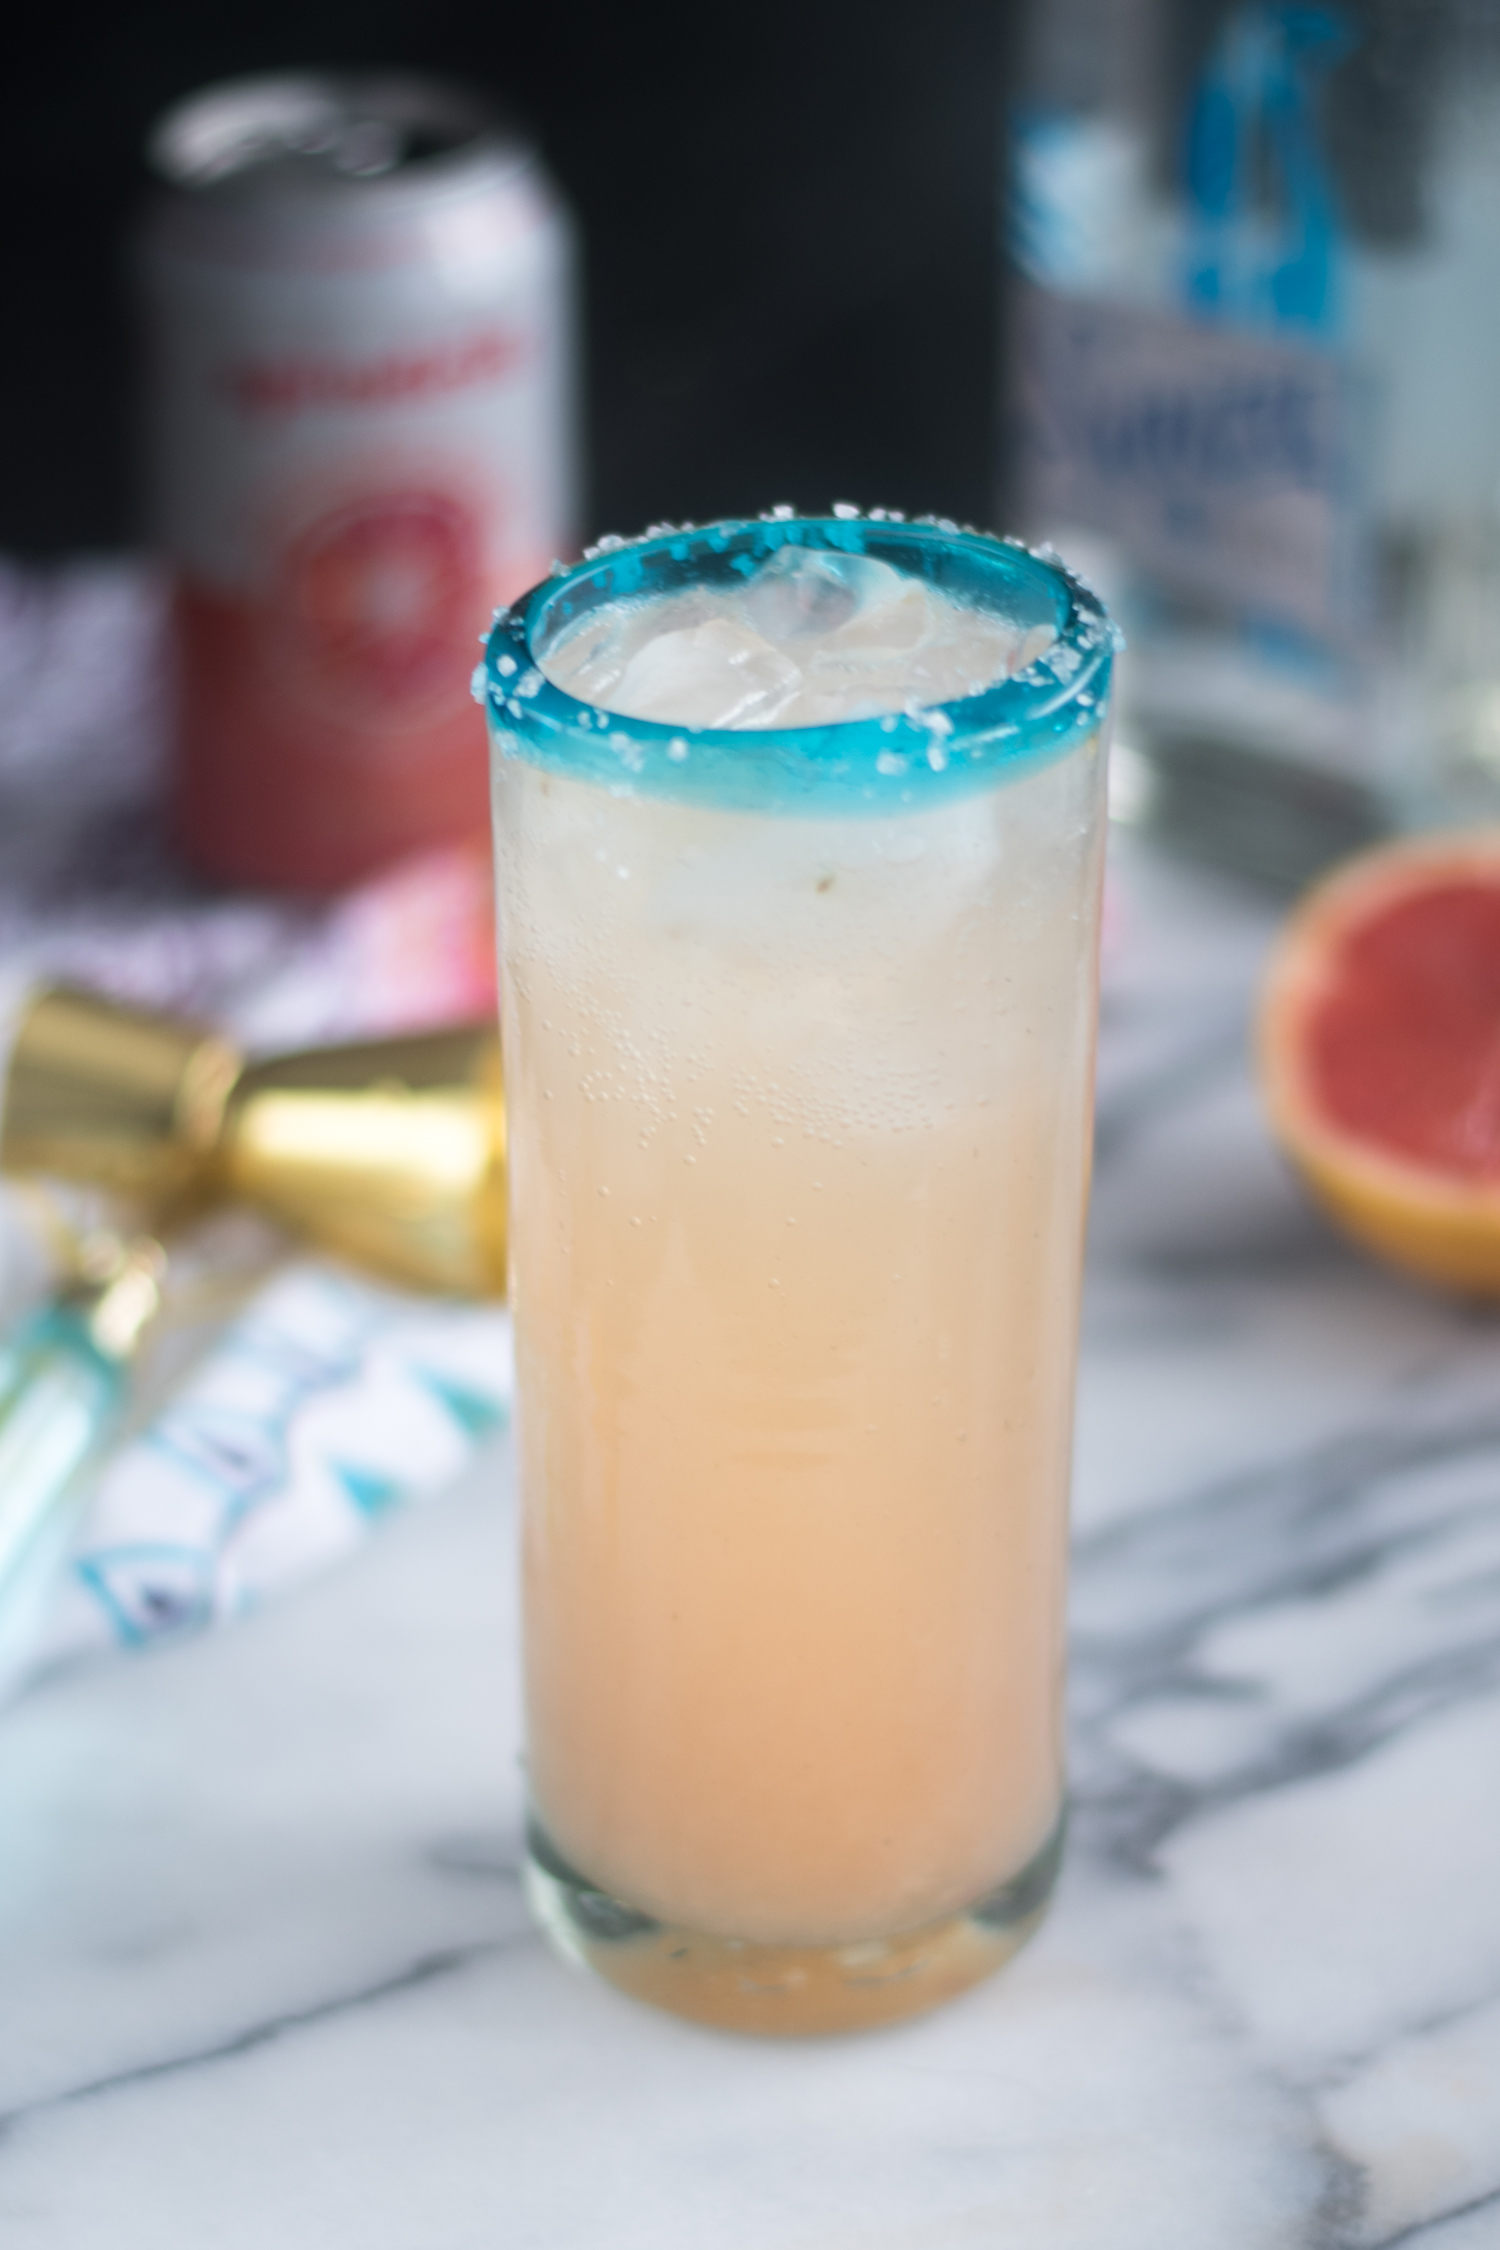 The Mexican Paloma Cocktail is one of Mexico's most beloved cocktails. After making my first Paloma, it was easy to see why the Paloma is more popular than the margarita in Mexico.